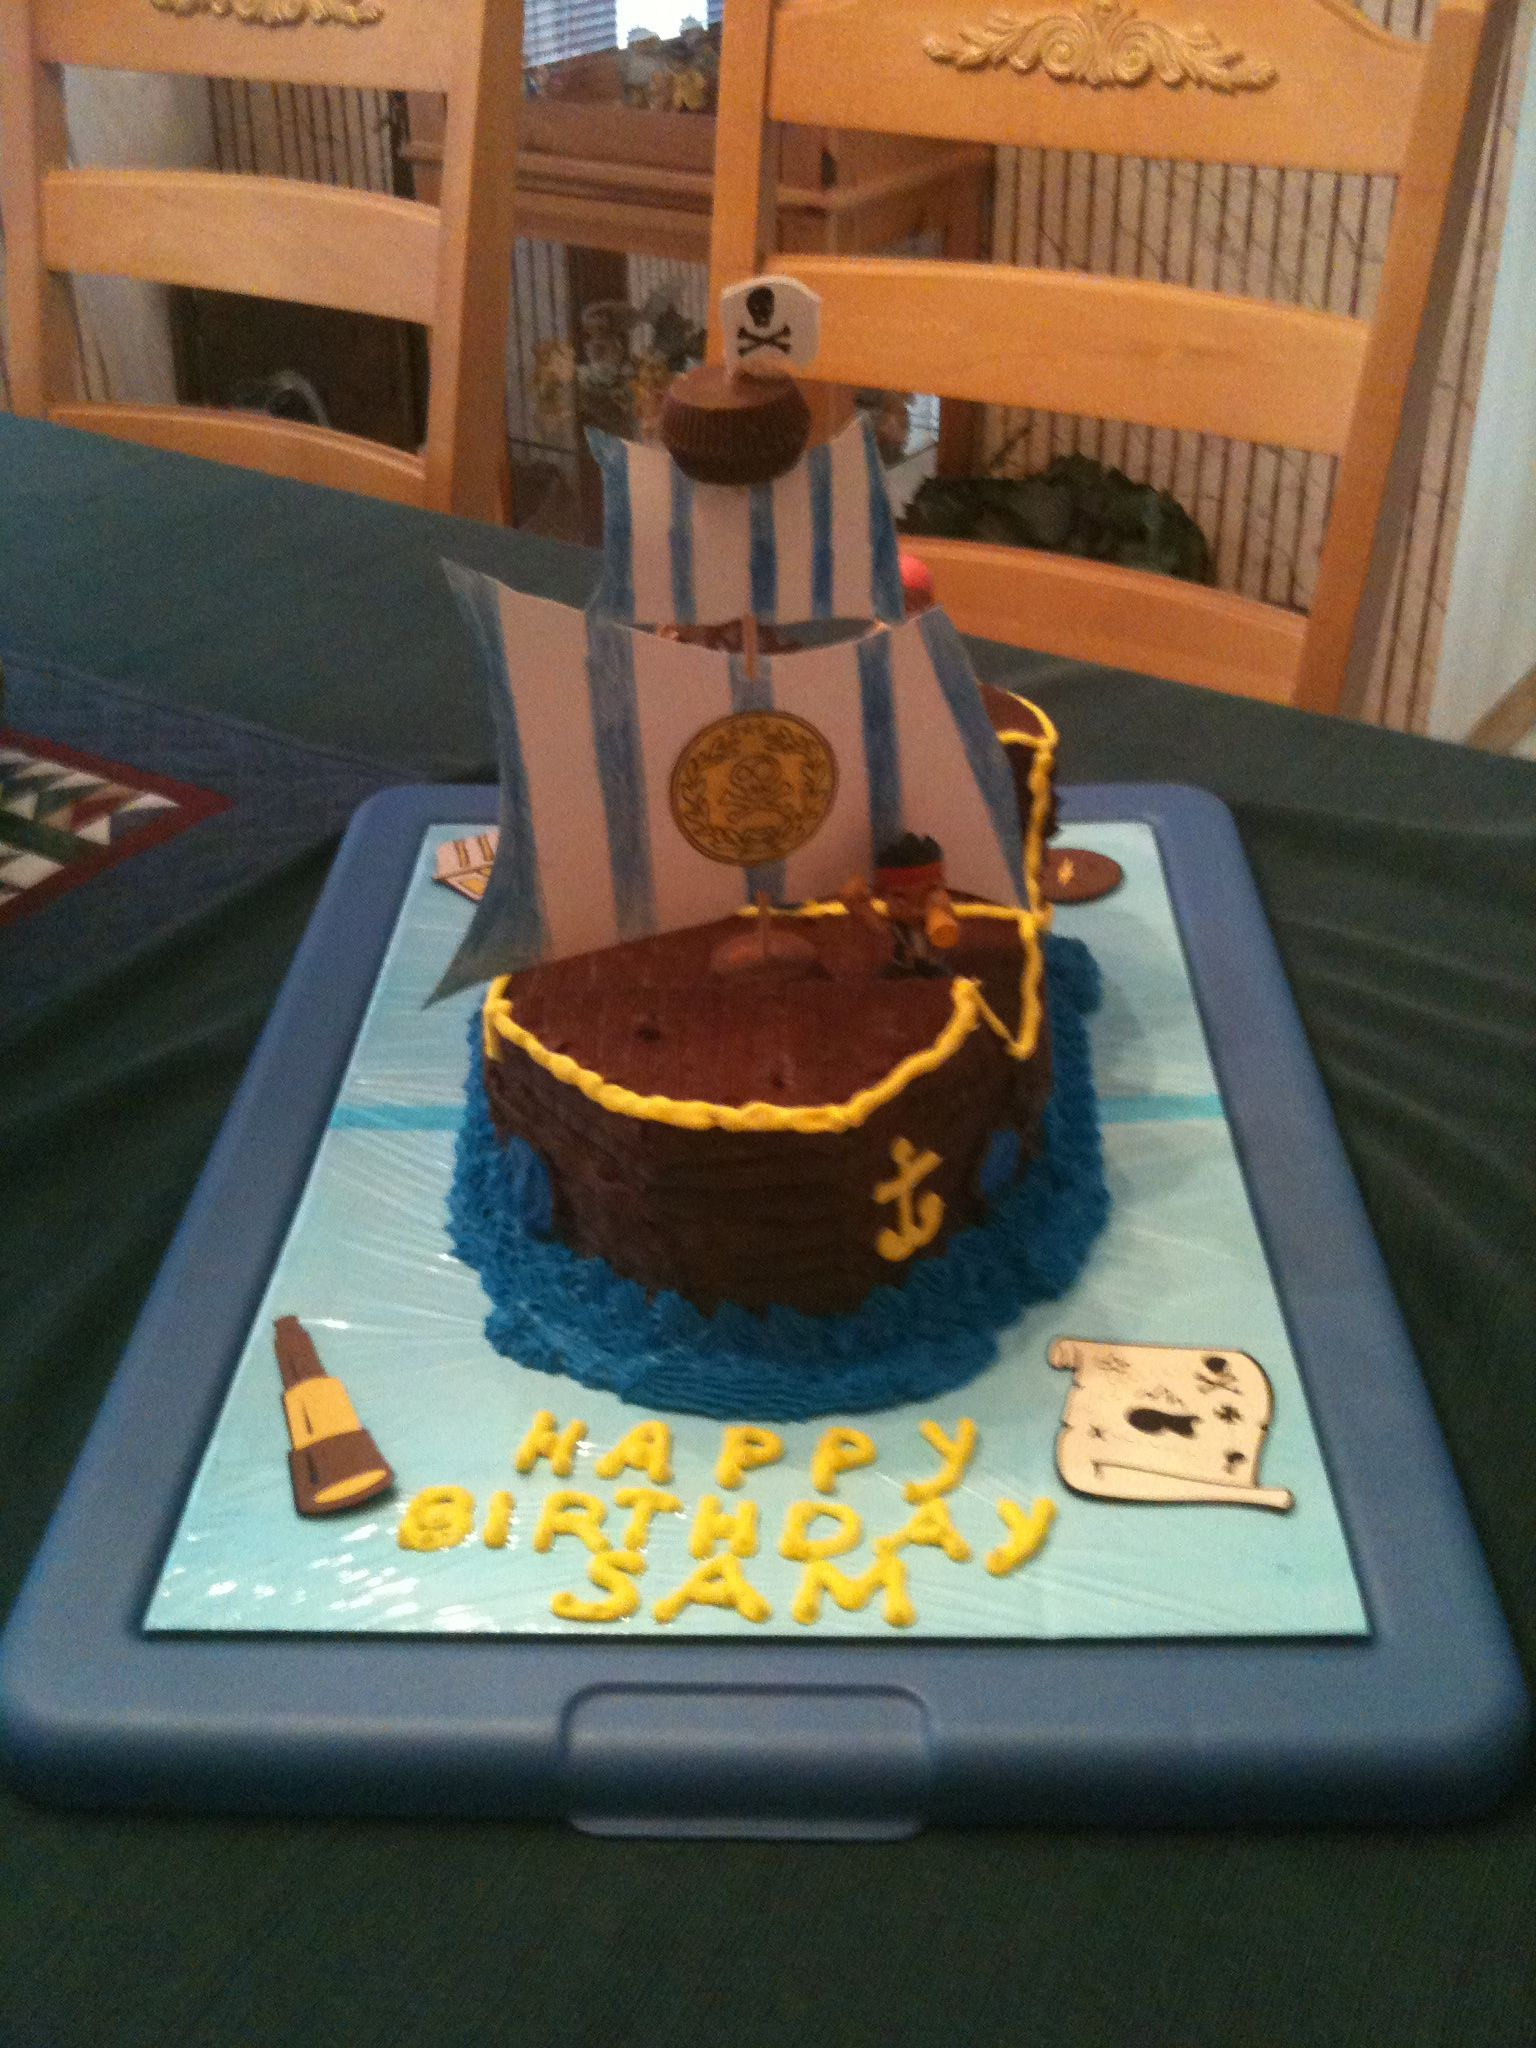 Had fun making bucky the pirate ship cake for my sons